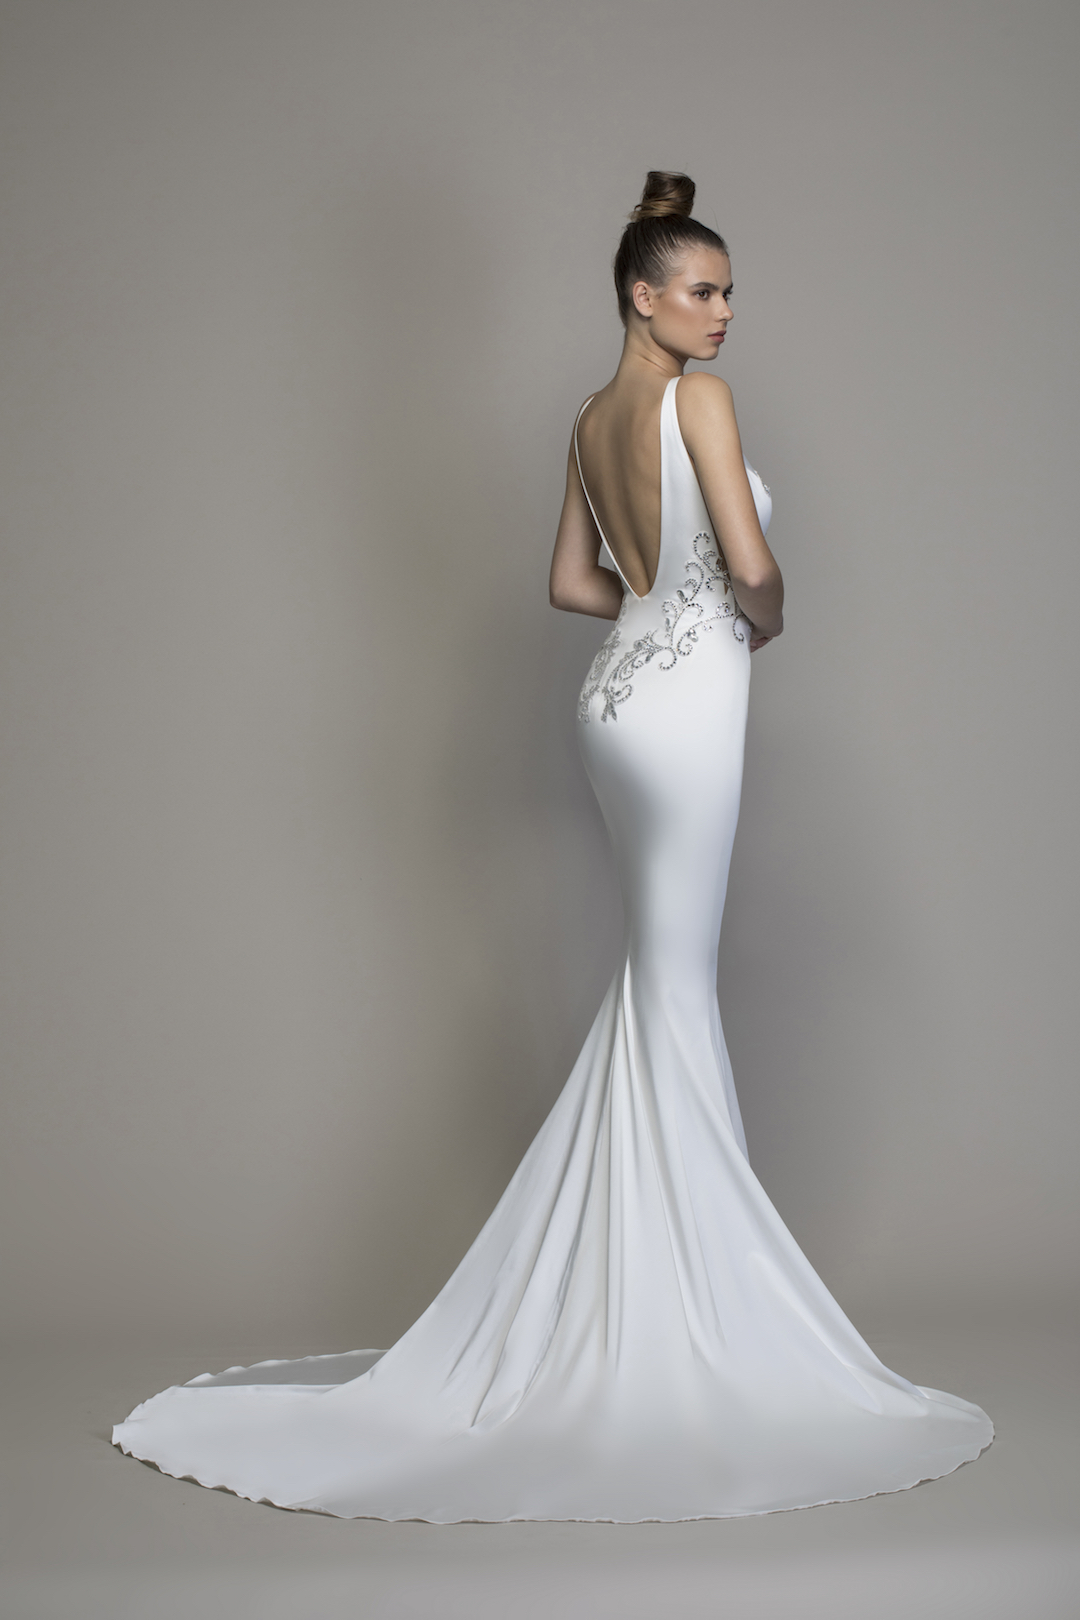 Pnina Tornai's new LOVE 2020 Collection is out! This is style 14773